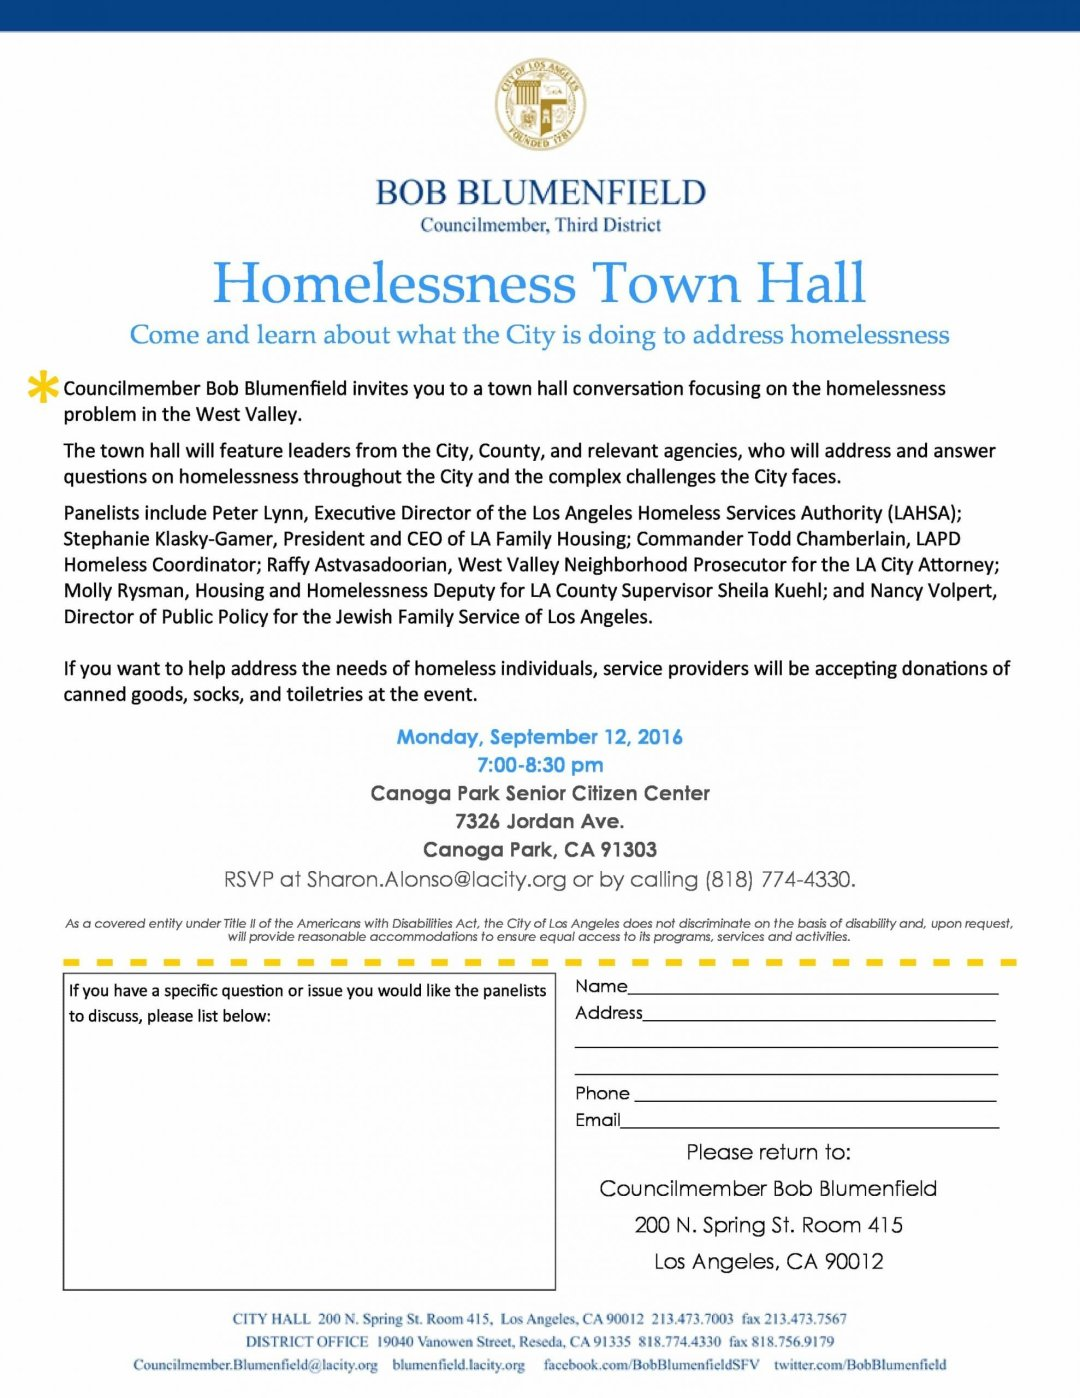 Homelessness Town Hall